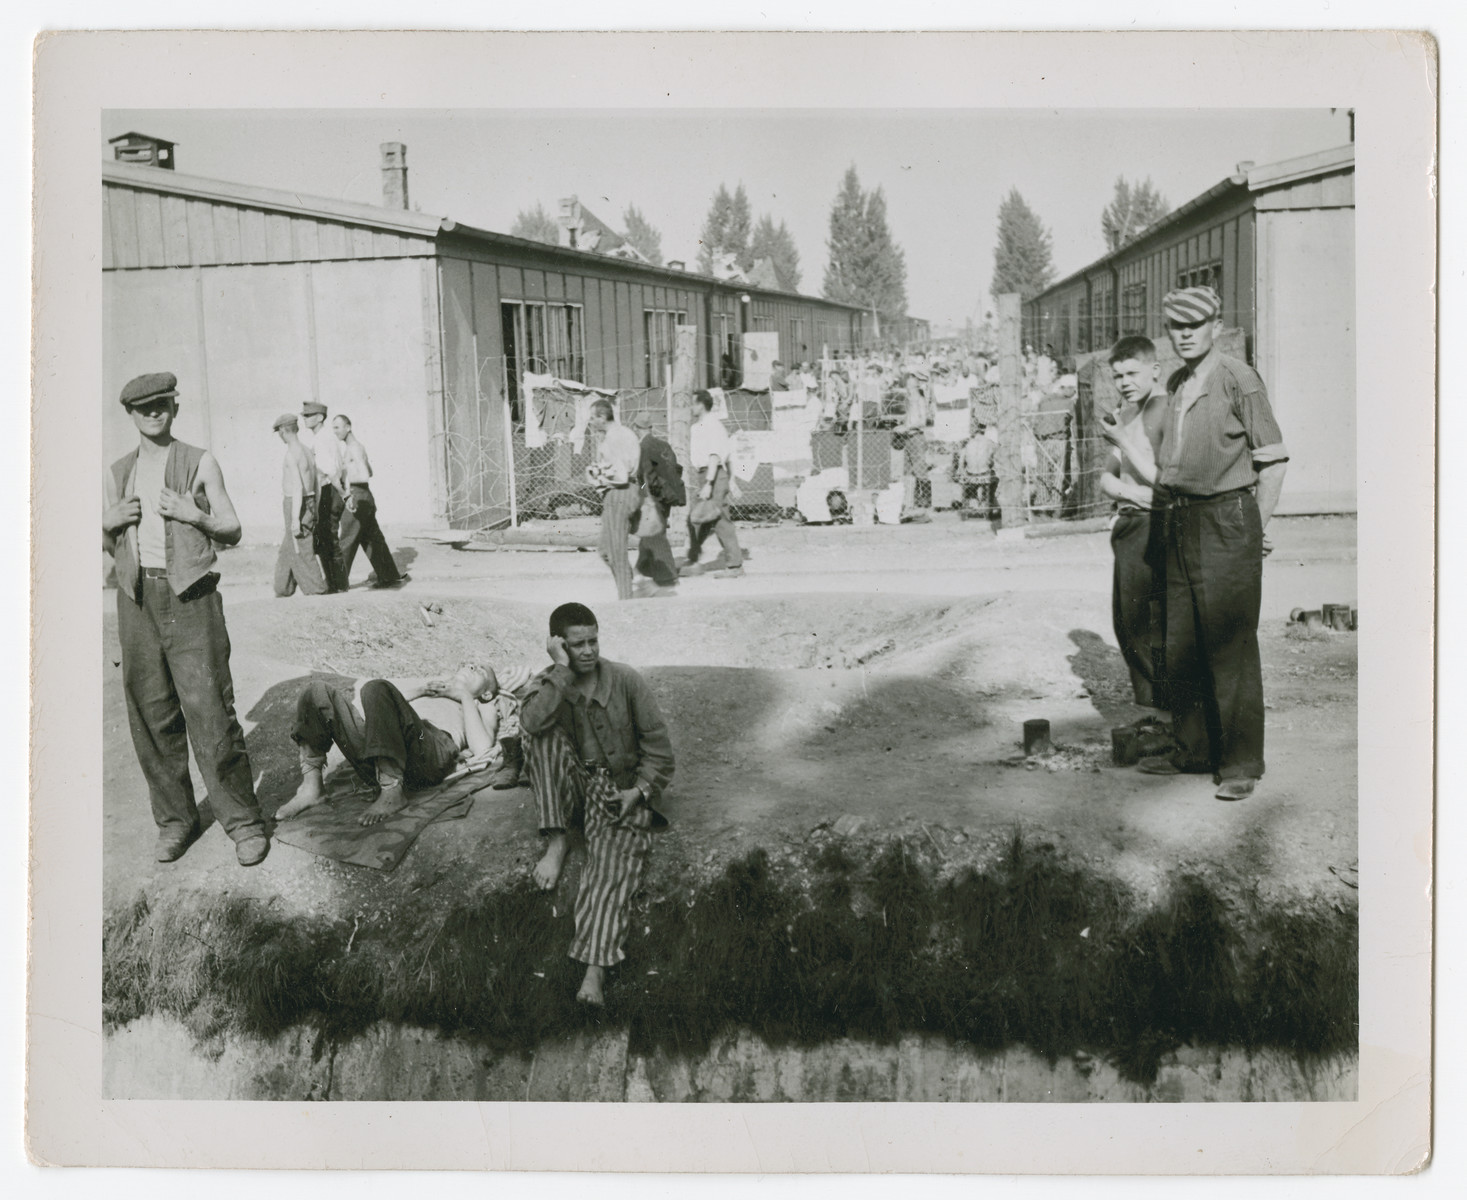 Survivors gather and relax on the grounds of the Dachau concentration camp after liberation.